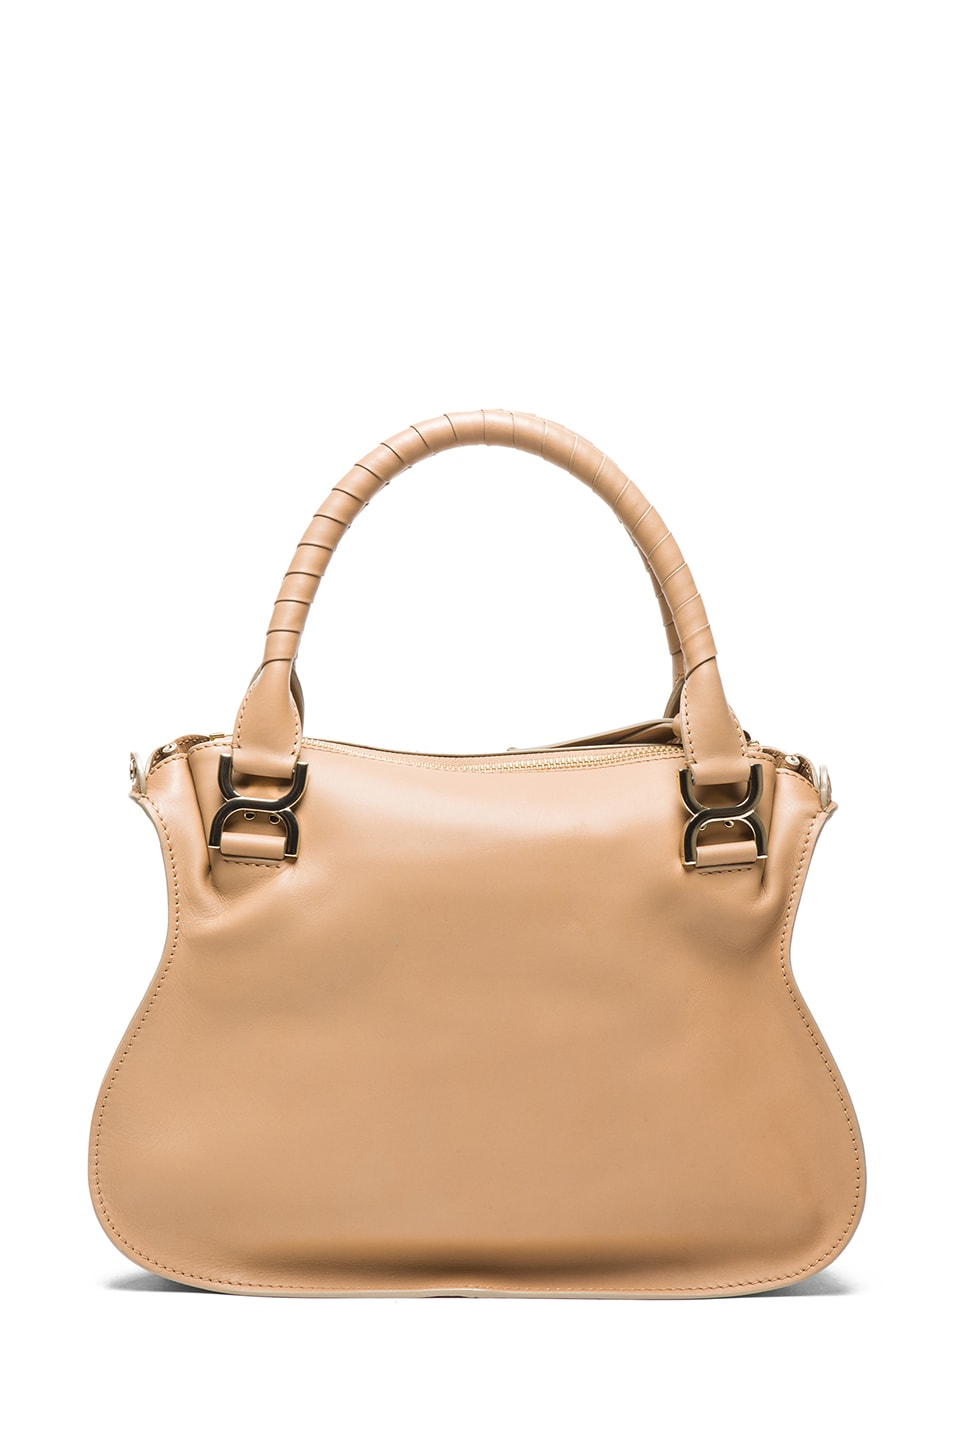 59414db91d594 Image 2 of Chloe Medium Marcie Shoulder Bag in Wet Sand